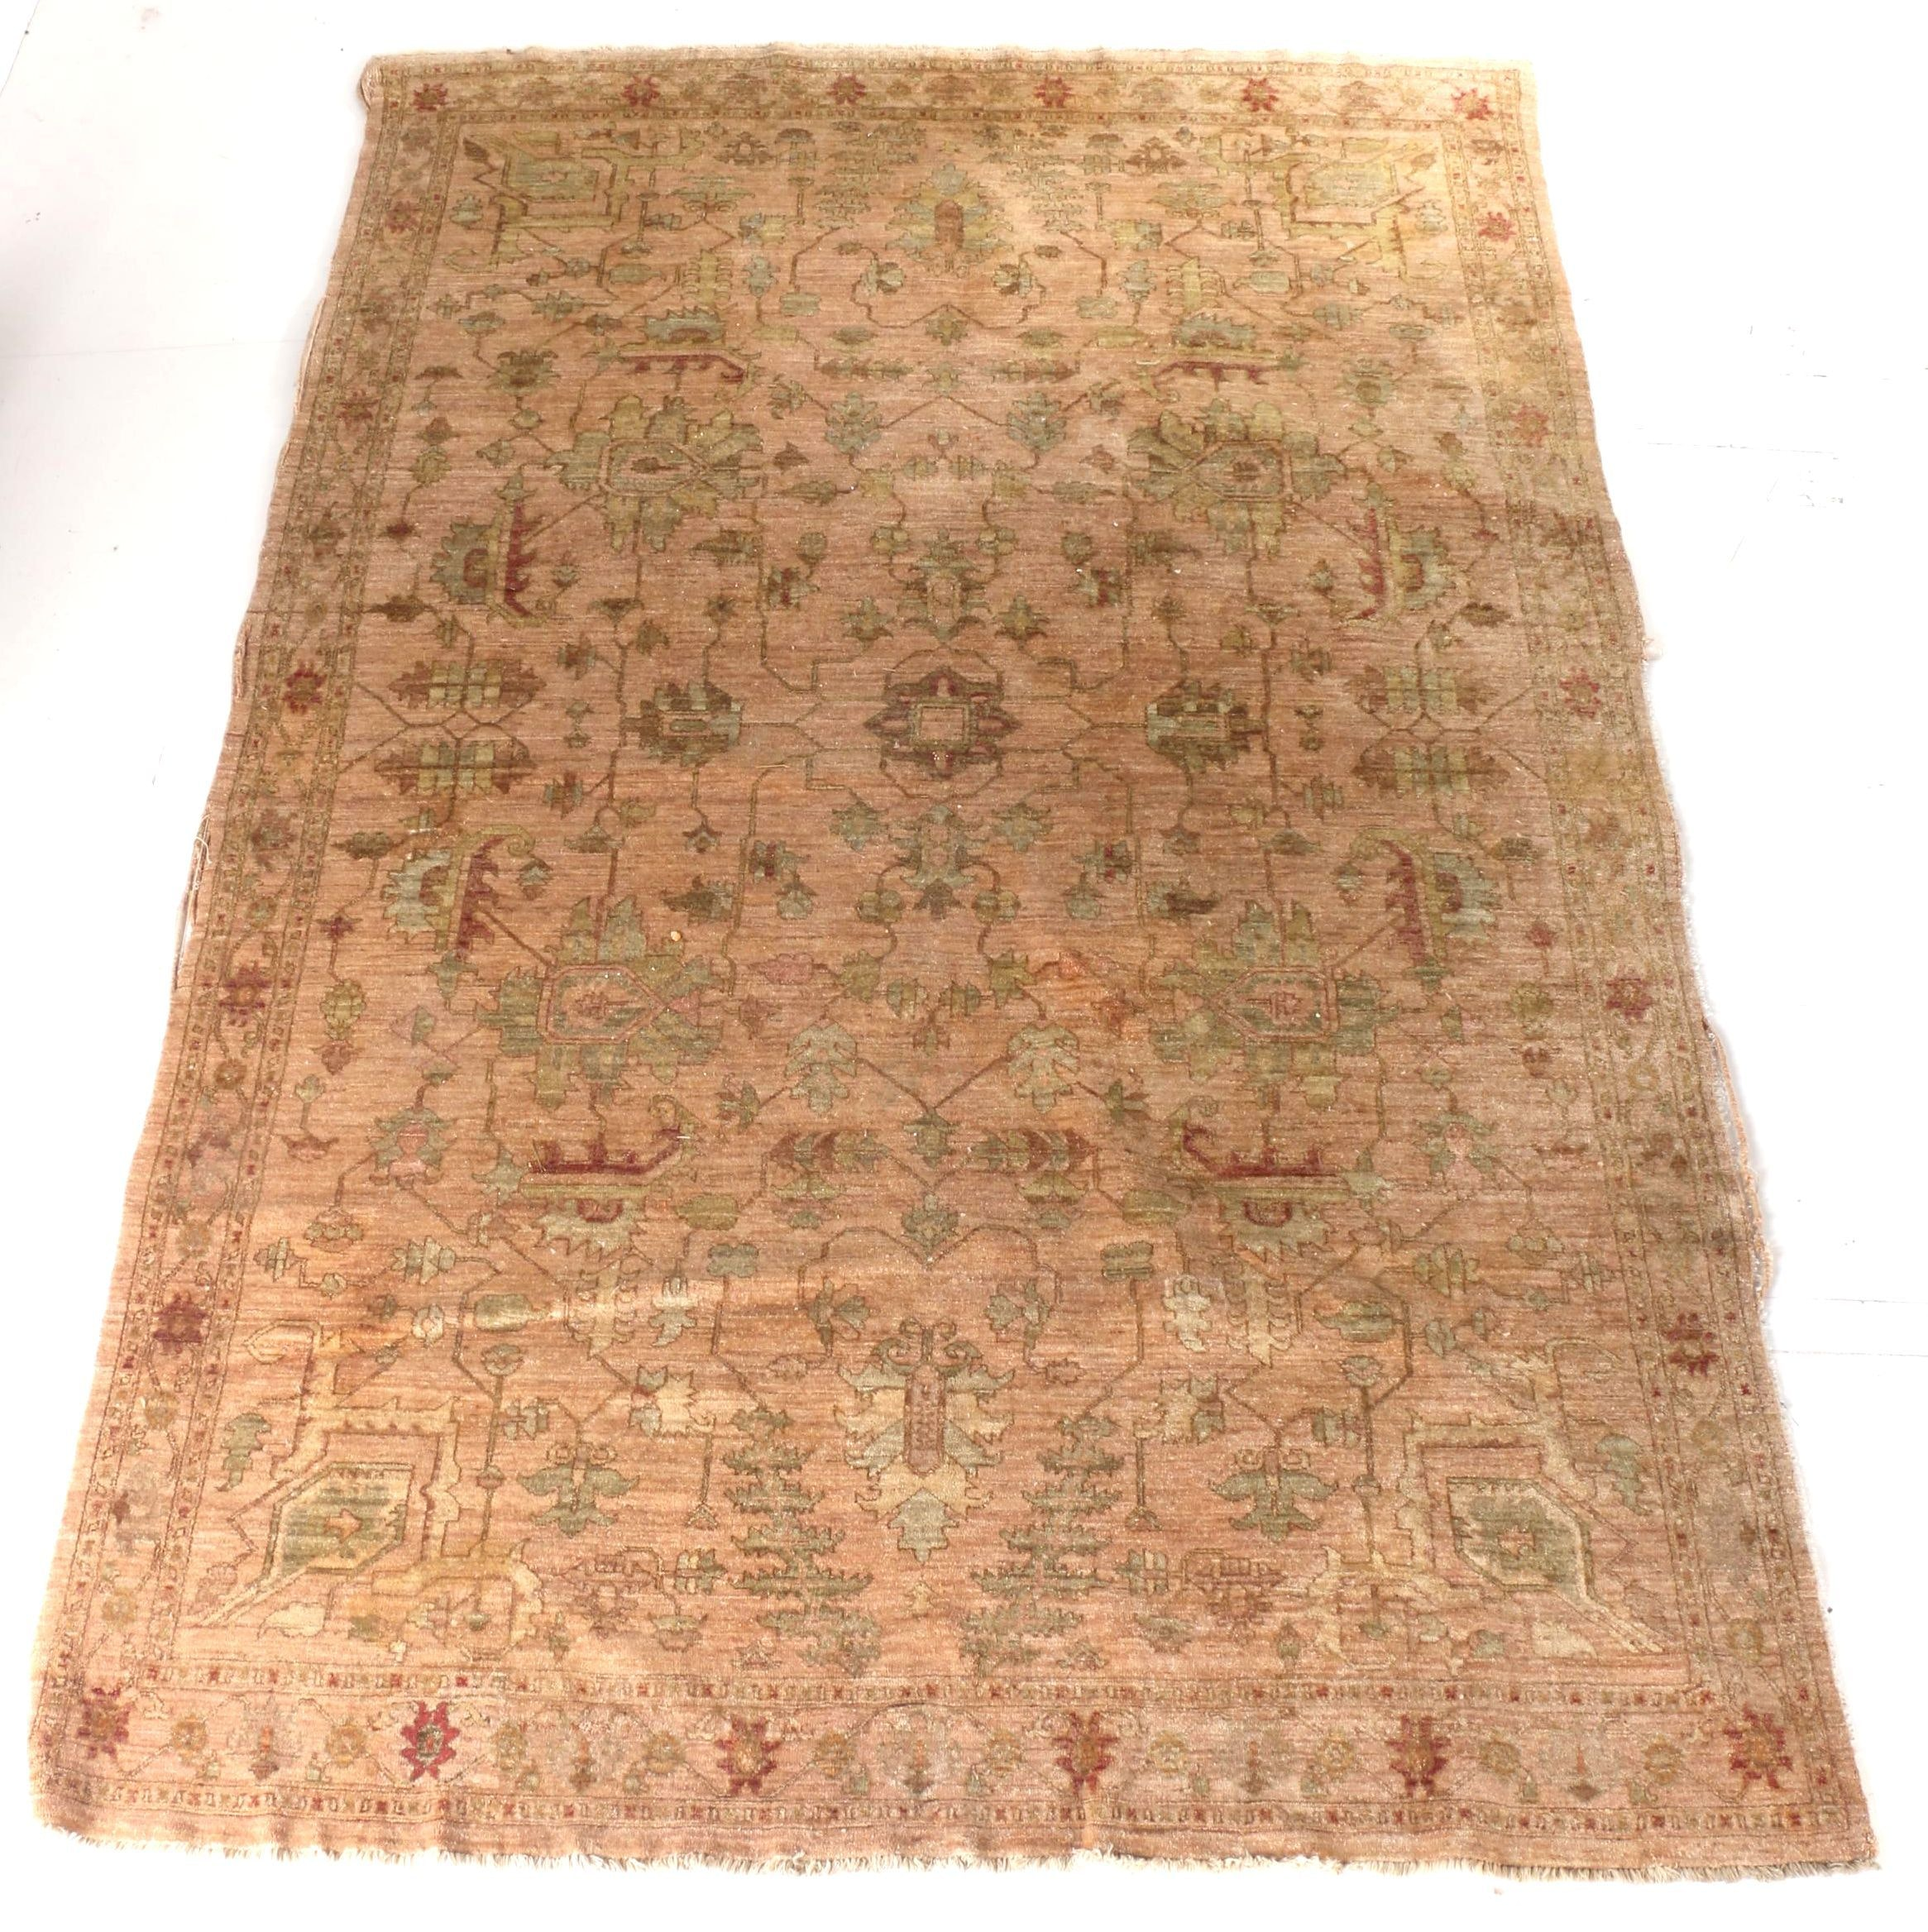 Hand-Knotted Indo-Peshawar Area Rug